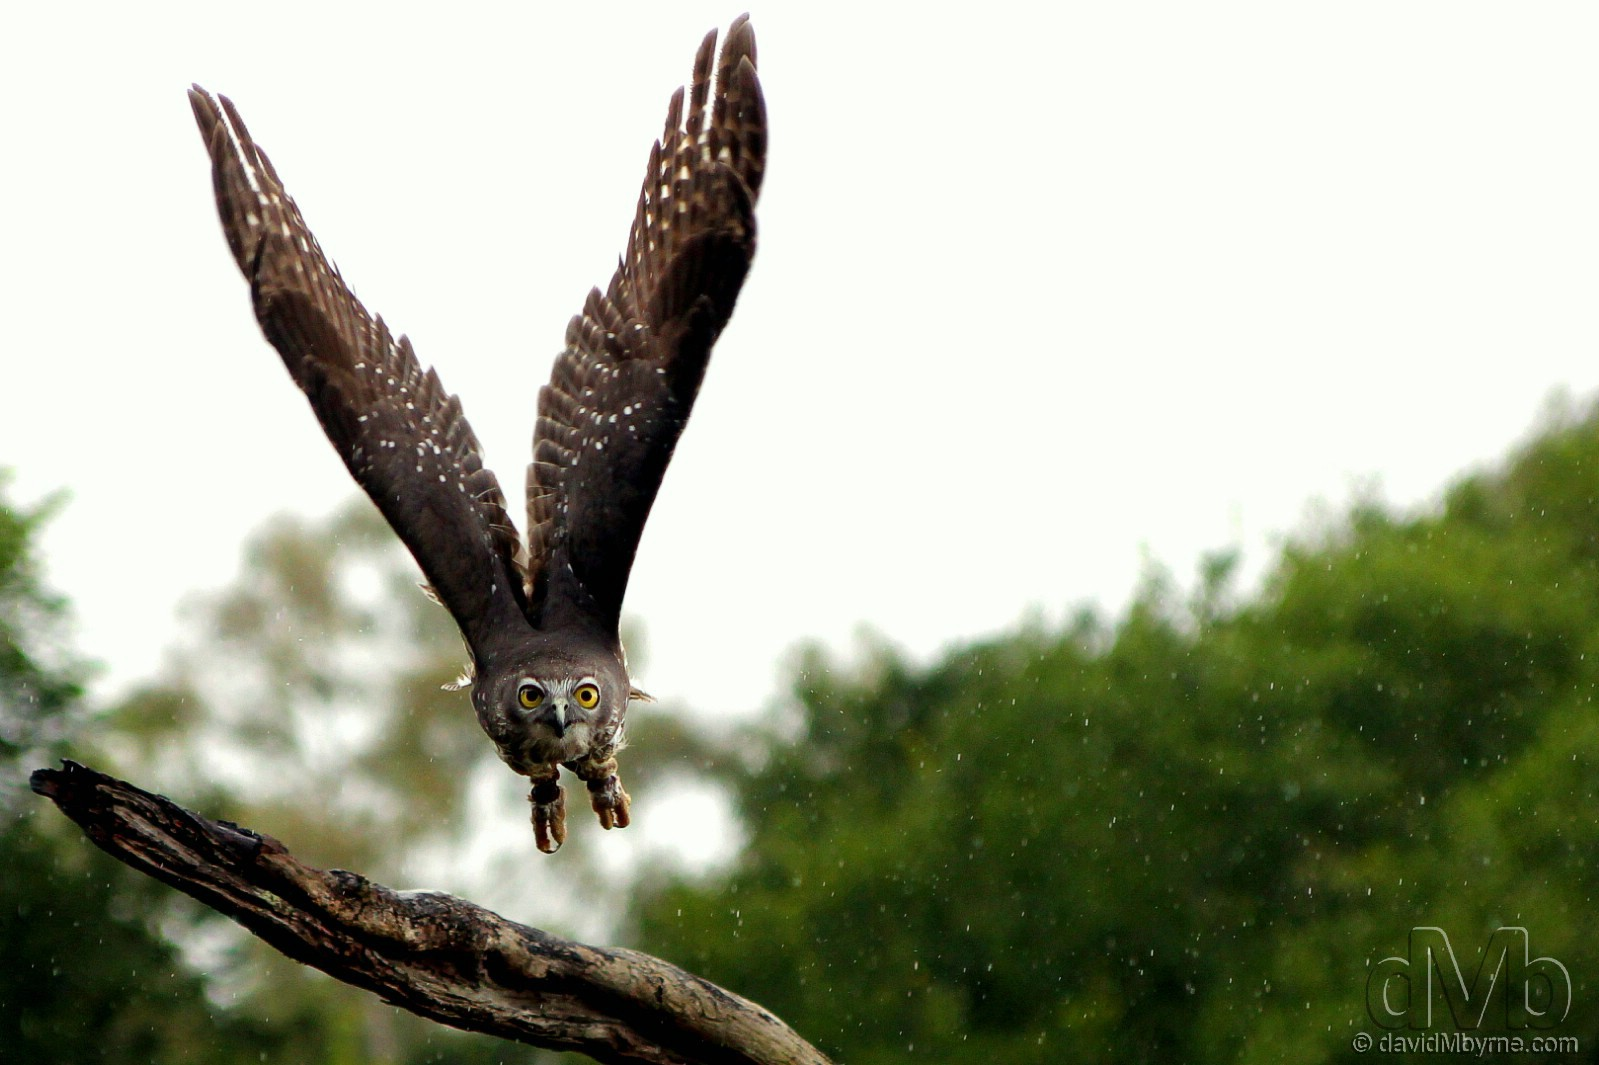 A Barking Owl in flight in light rain at the Lone Pine Koala Sanctuary on the outskirts of Brisbane, Queensland, Australia. April 15th, 2012 (EOS 60D || Tamron 28-75mm || 75mm, 1/1250sec, f/2.8, iso400)